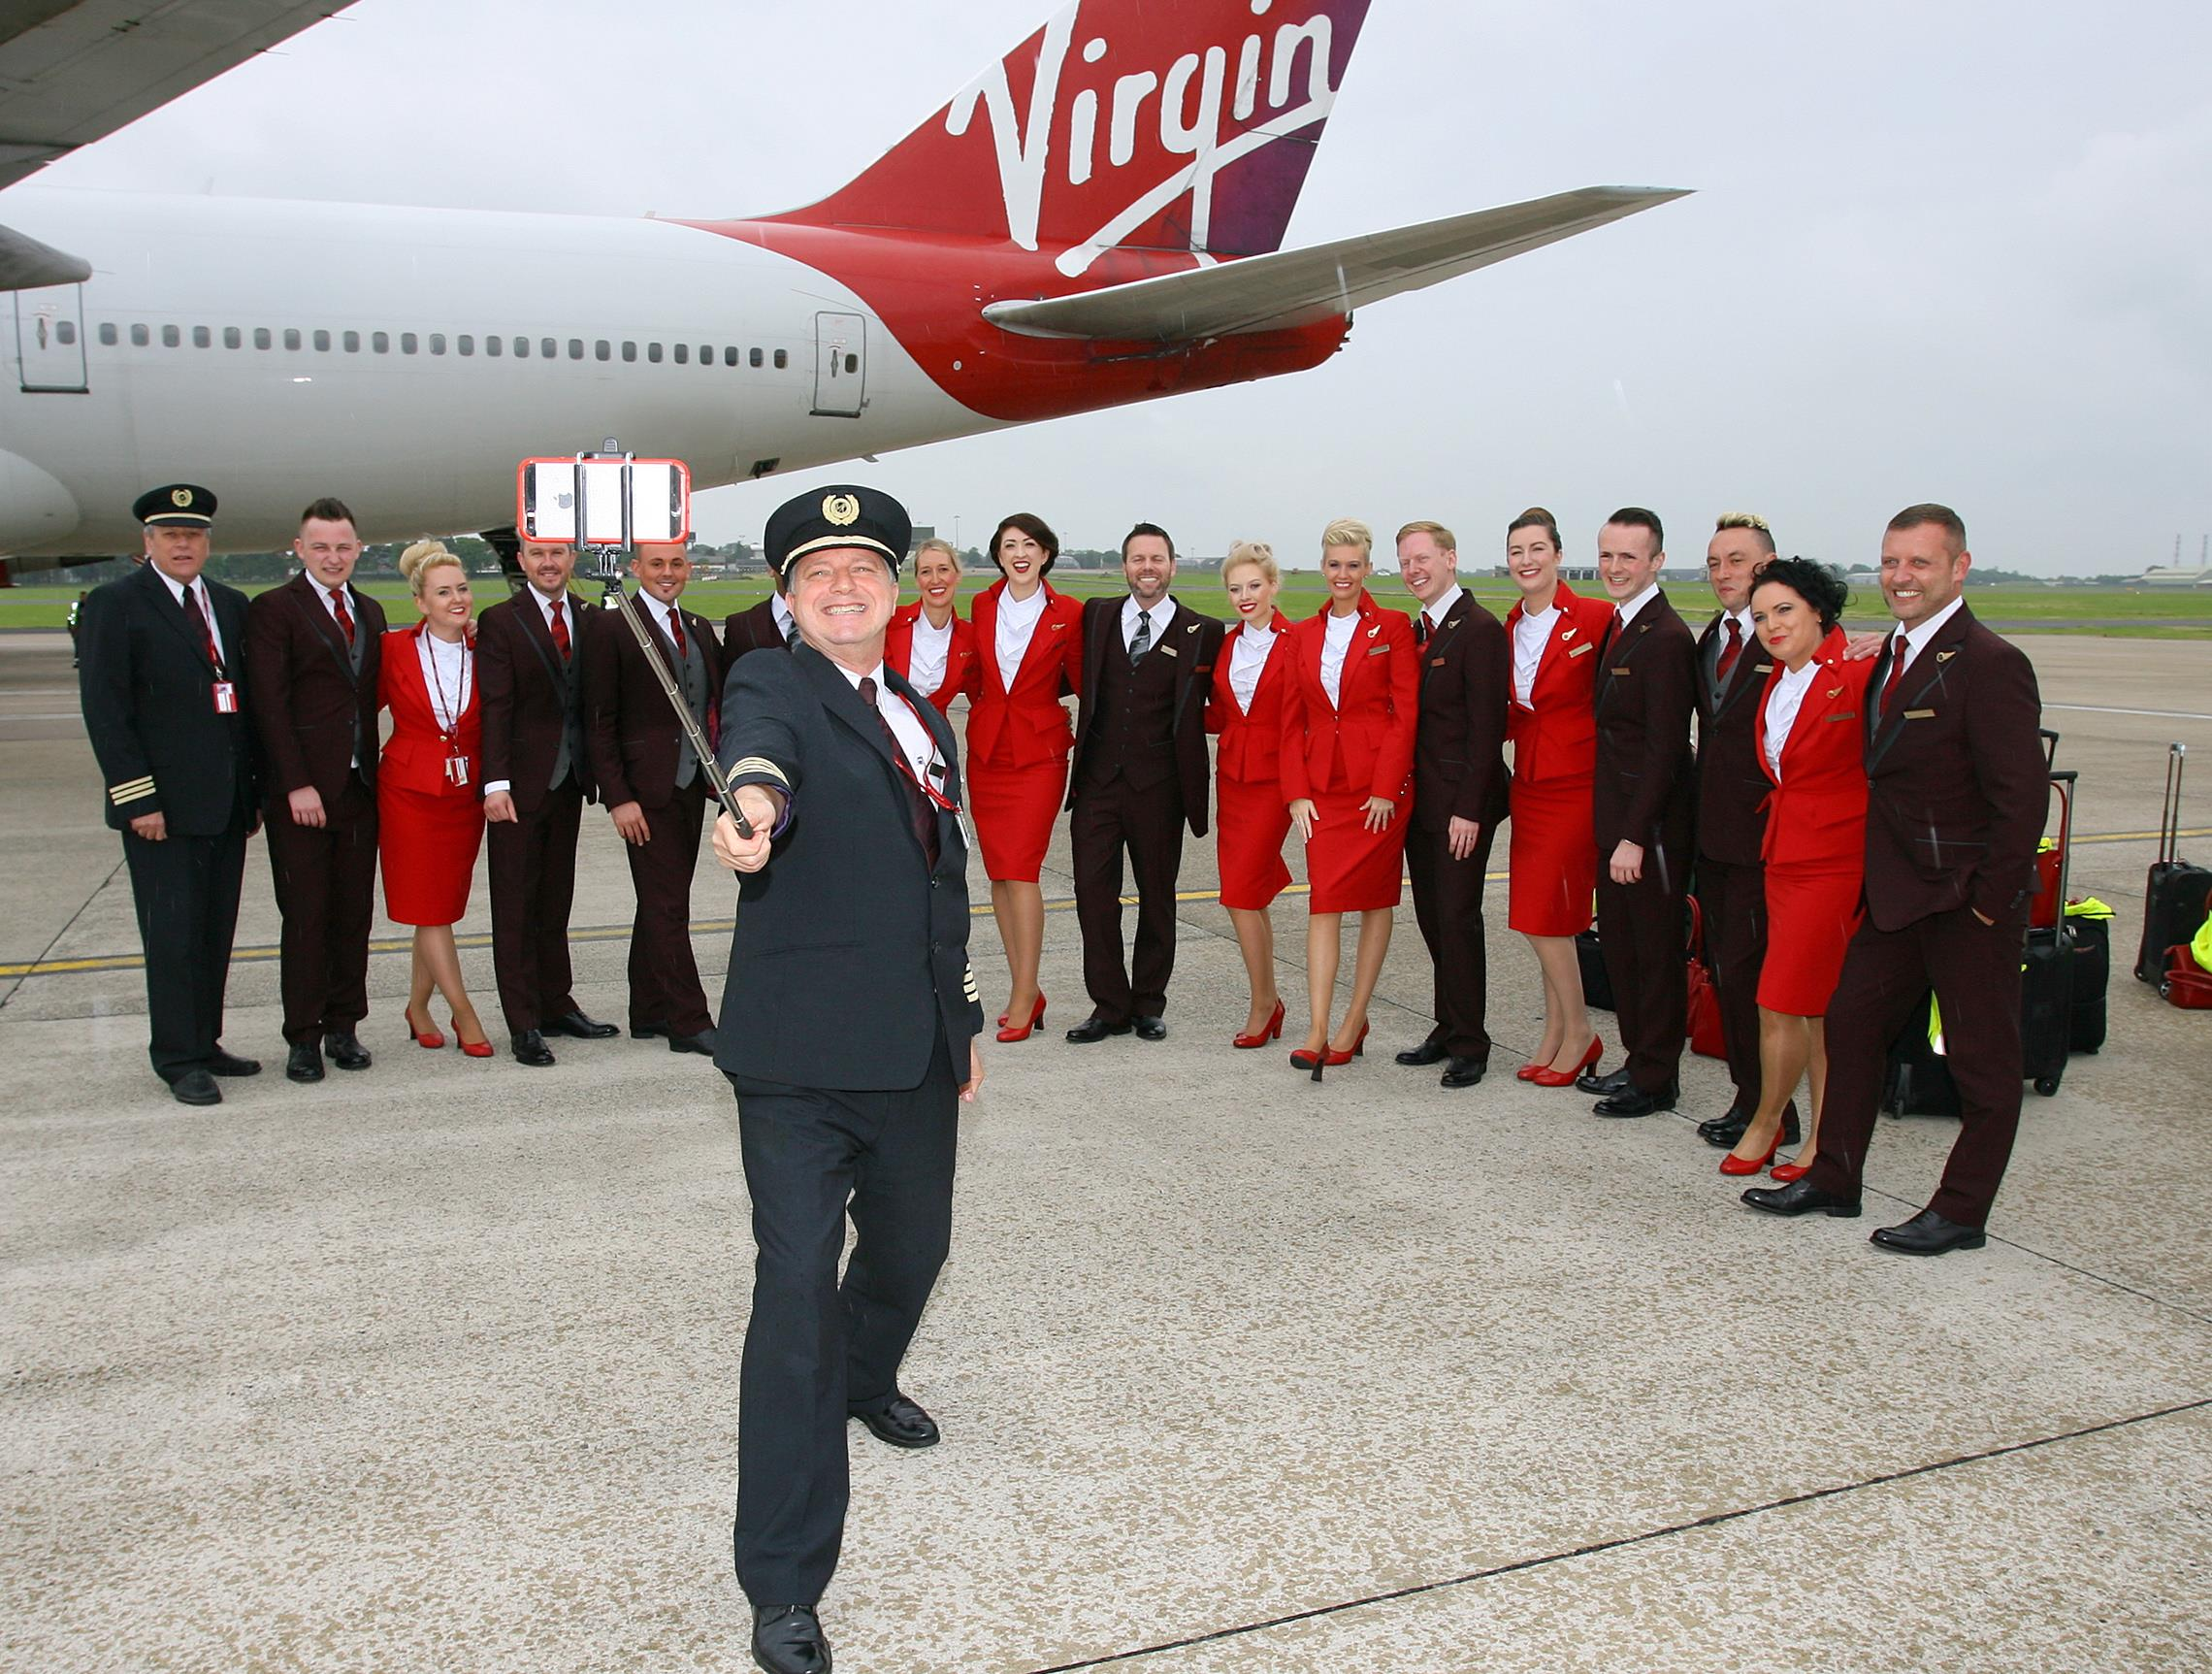 Airport welcomes Virgin Atlantic expansion of Orlando service for Summer 2017